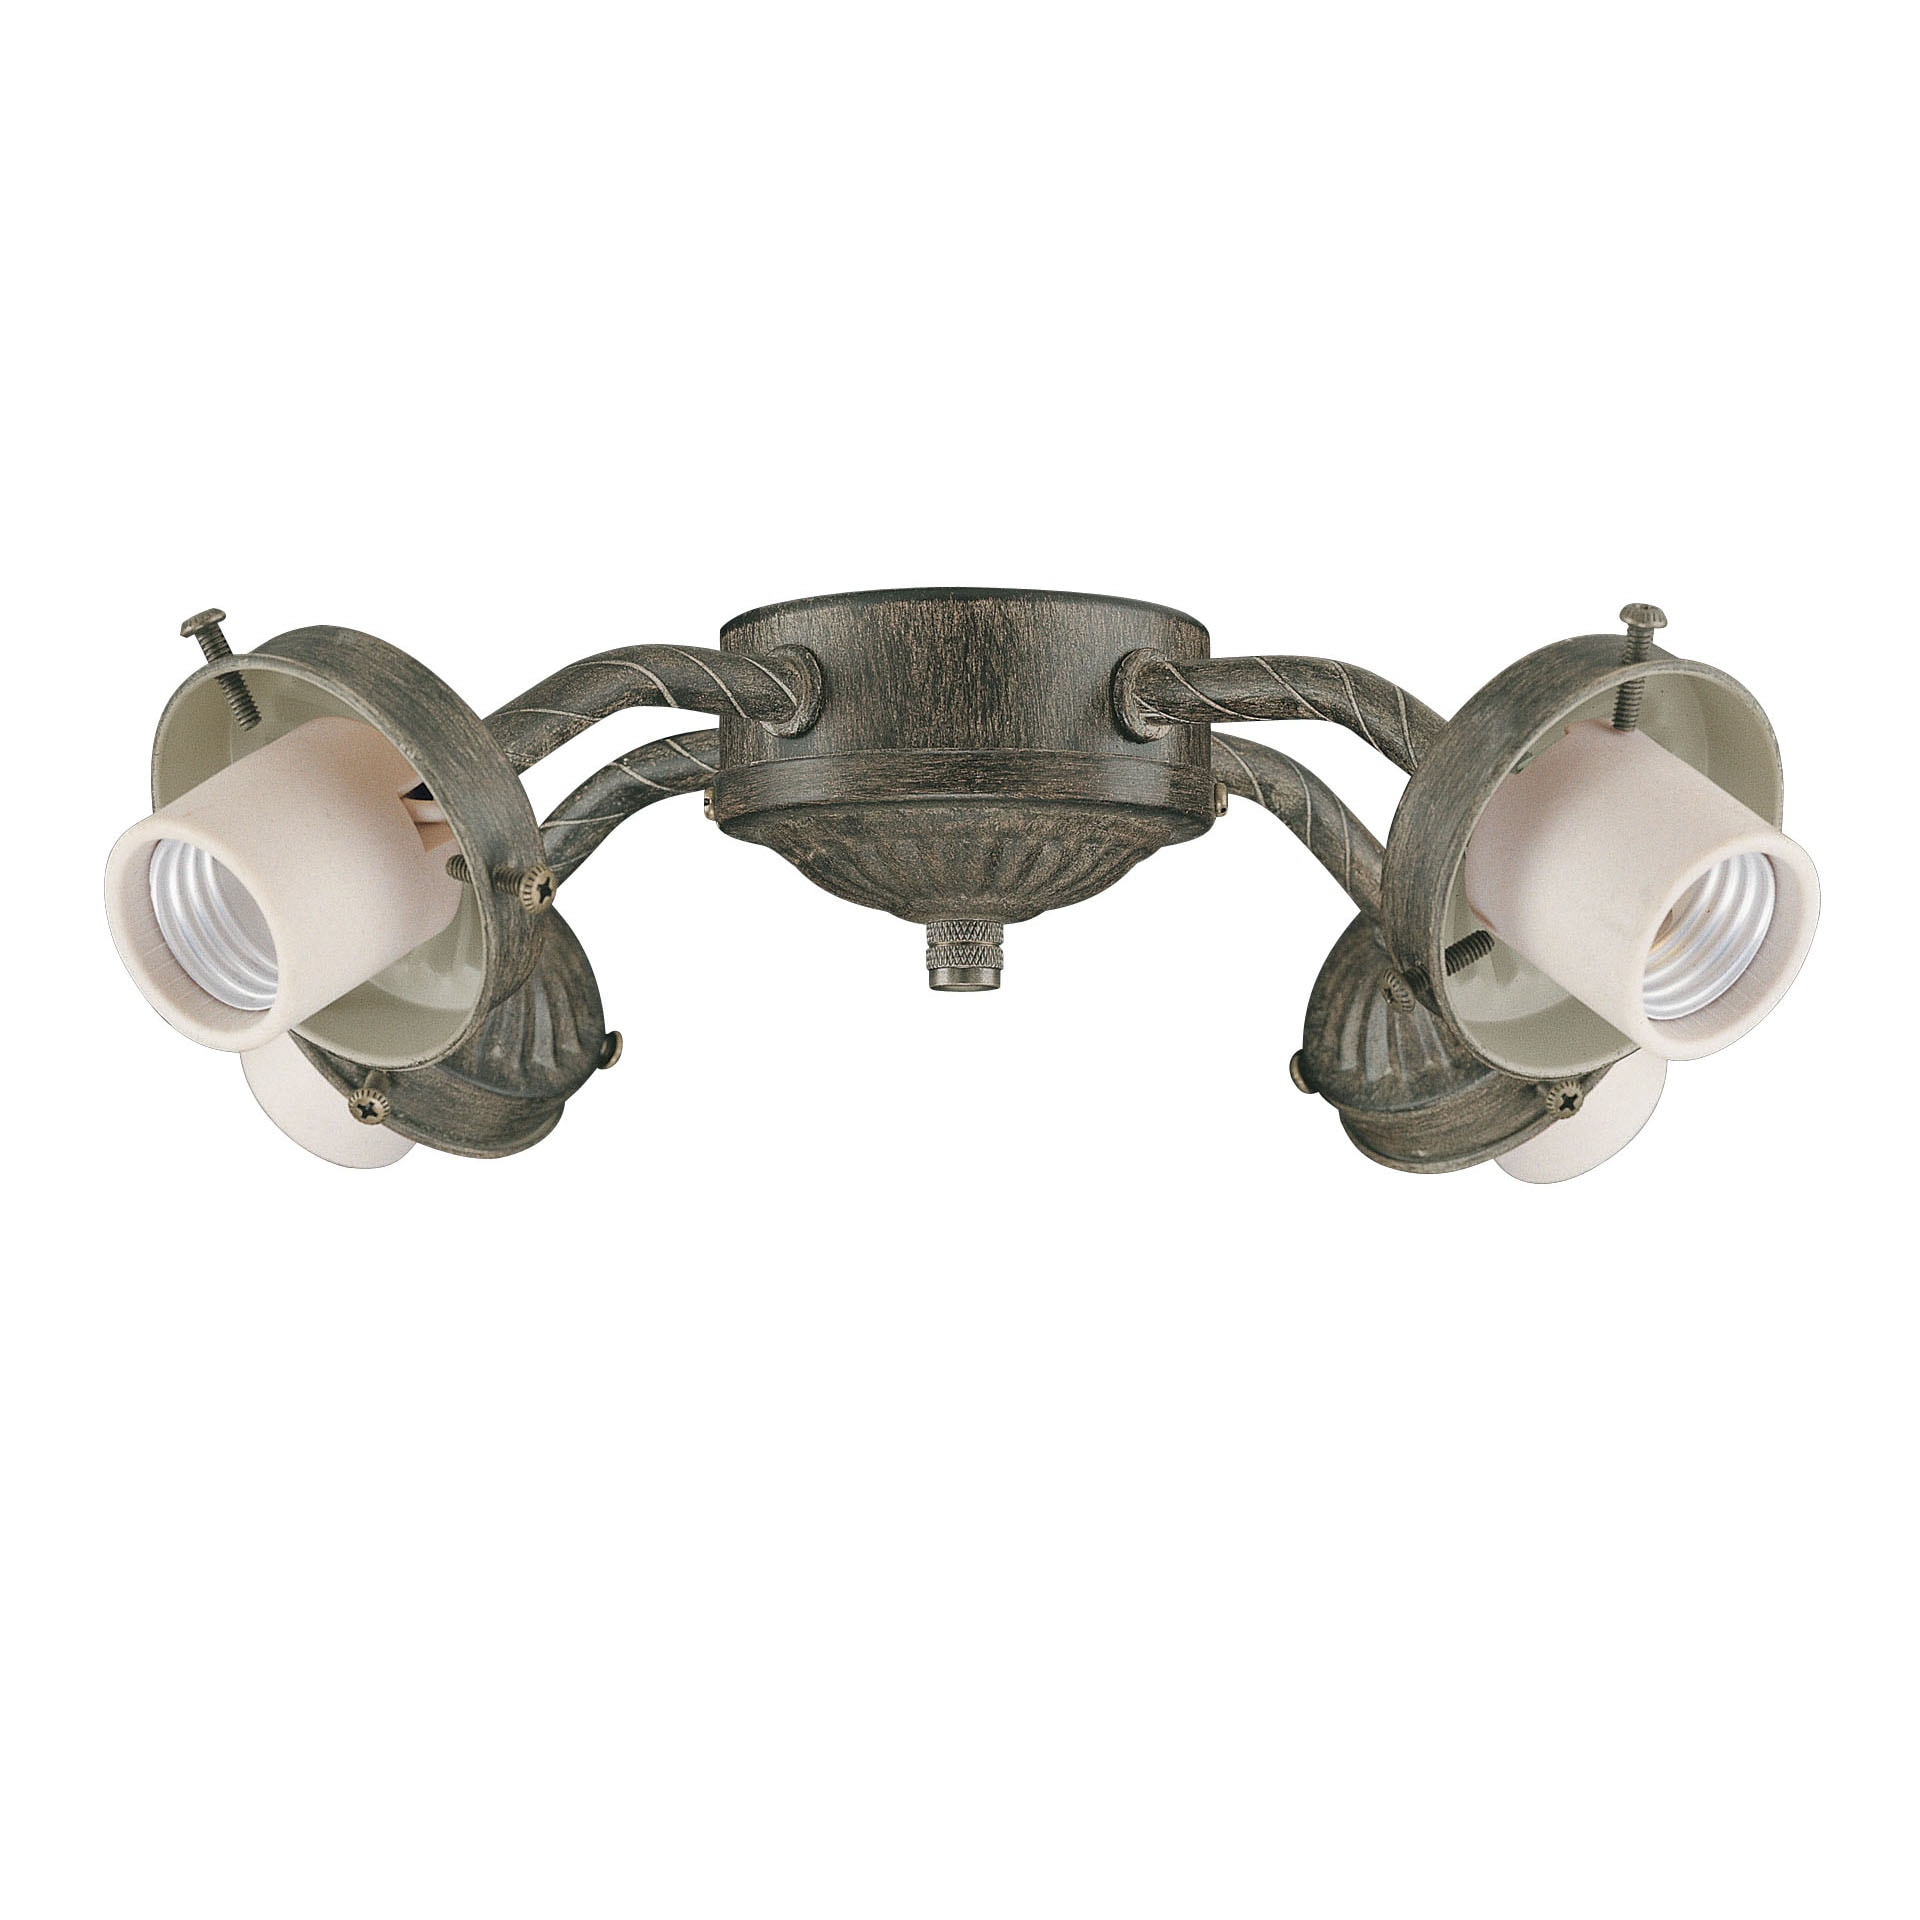 Four Light Aged Pecan Ceiling Fan Light Kit - Free Shipping On Orders ...